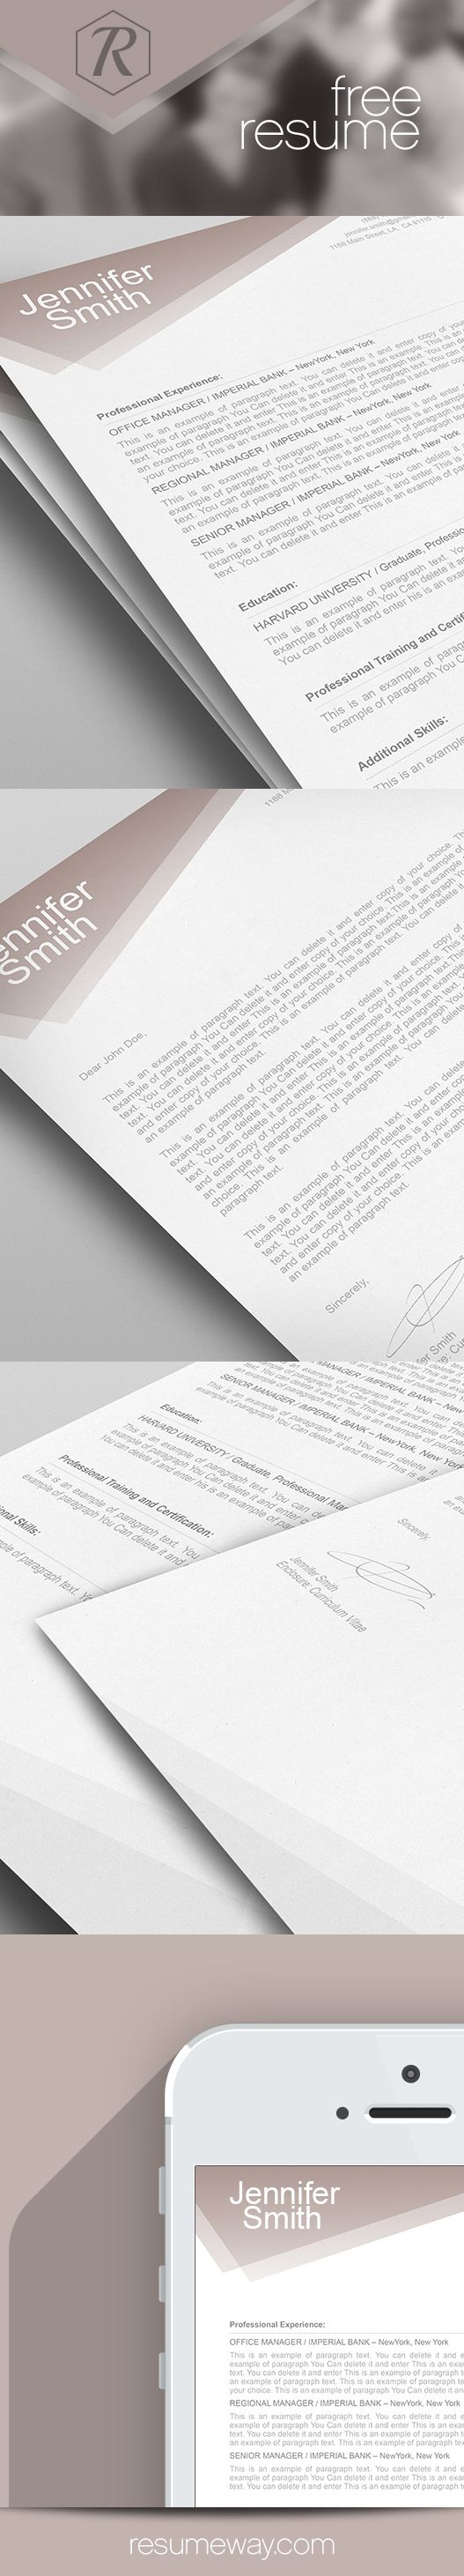 best images about resumes sample resume resume template 1100010 premium line of resume cover letter templates edit ms word apple pages